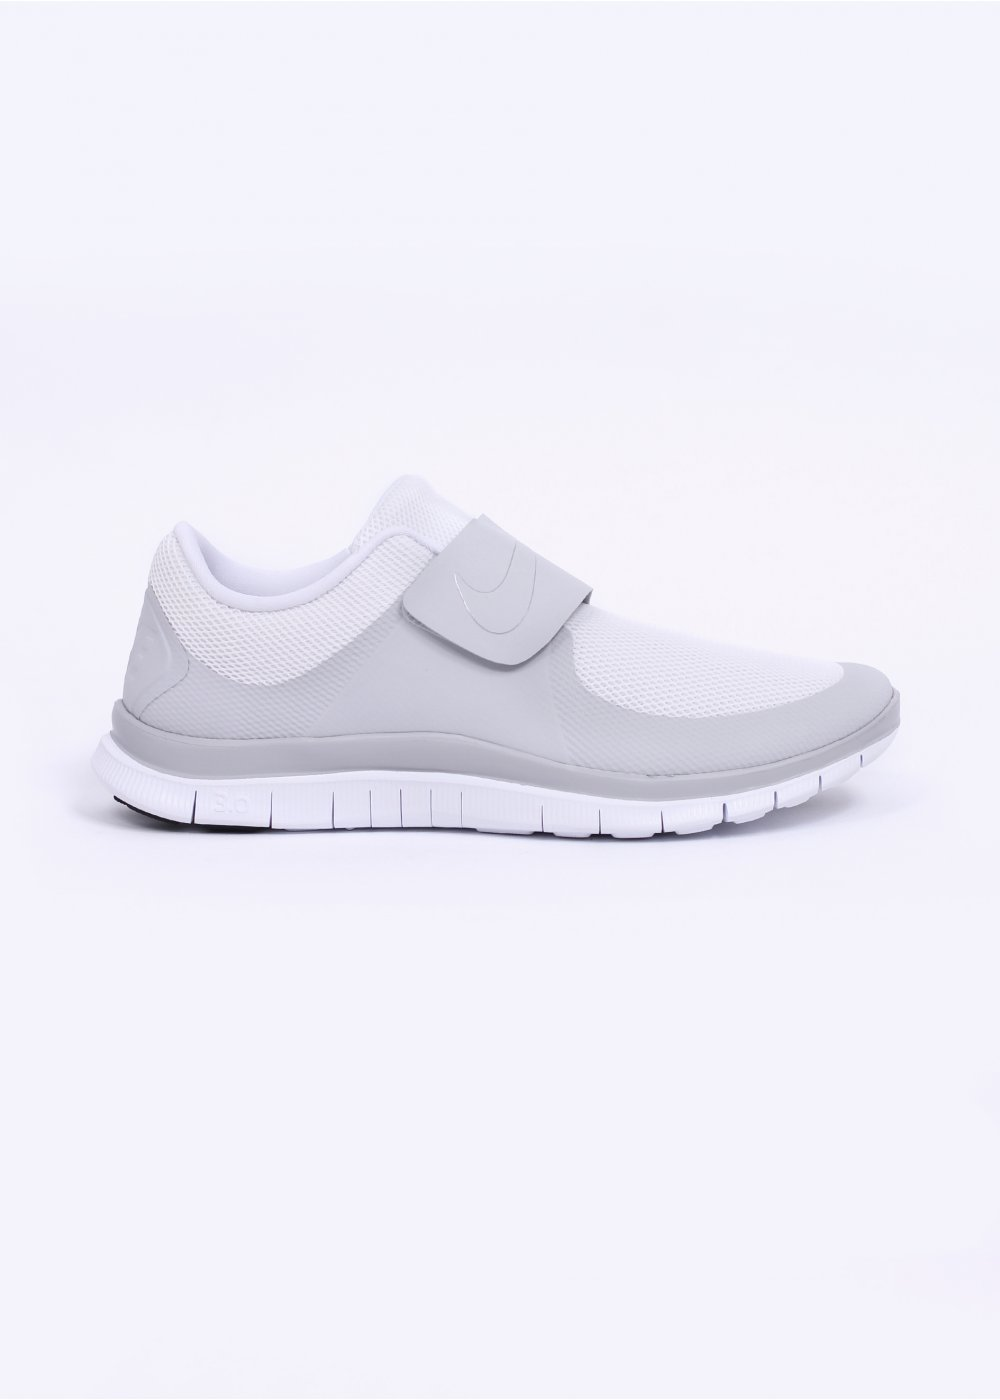 8a8c6426bbb248 Nike Free Socfly Trainers - White